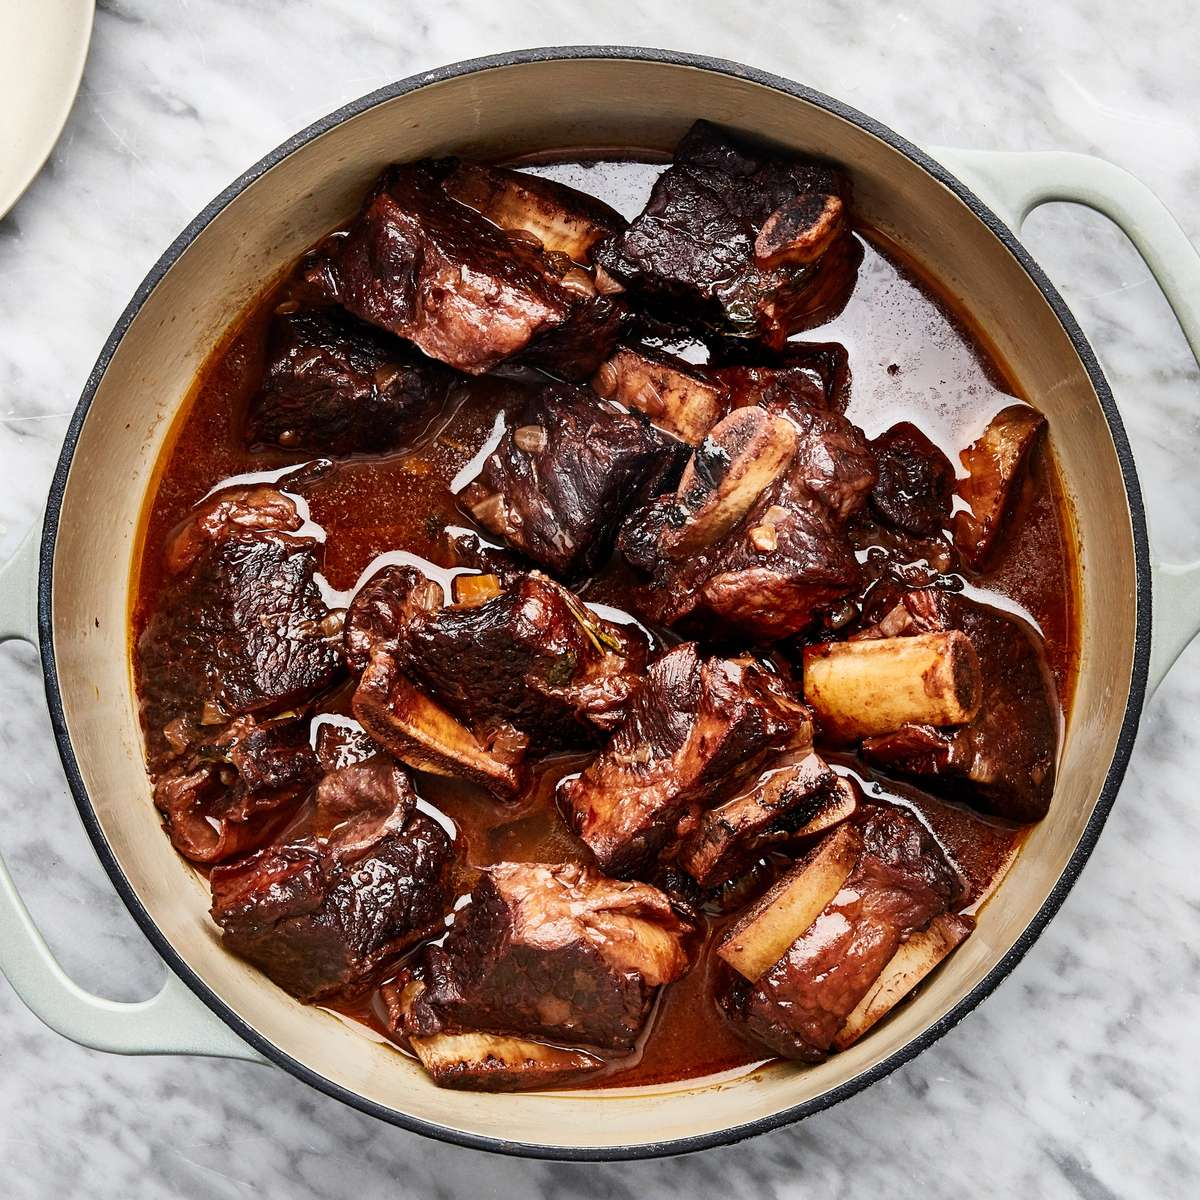 Braised Short Rib of Beef Dinner for Two